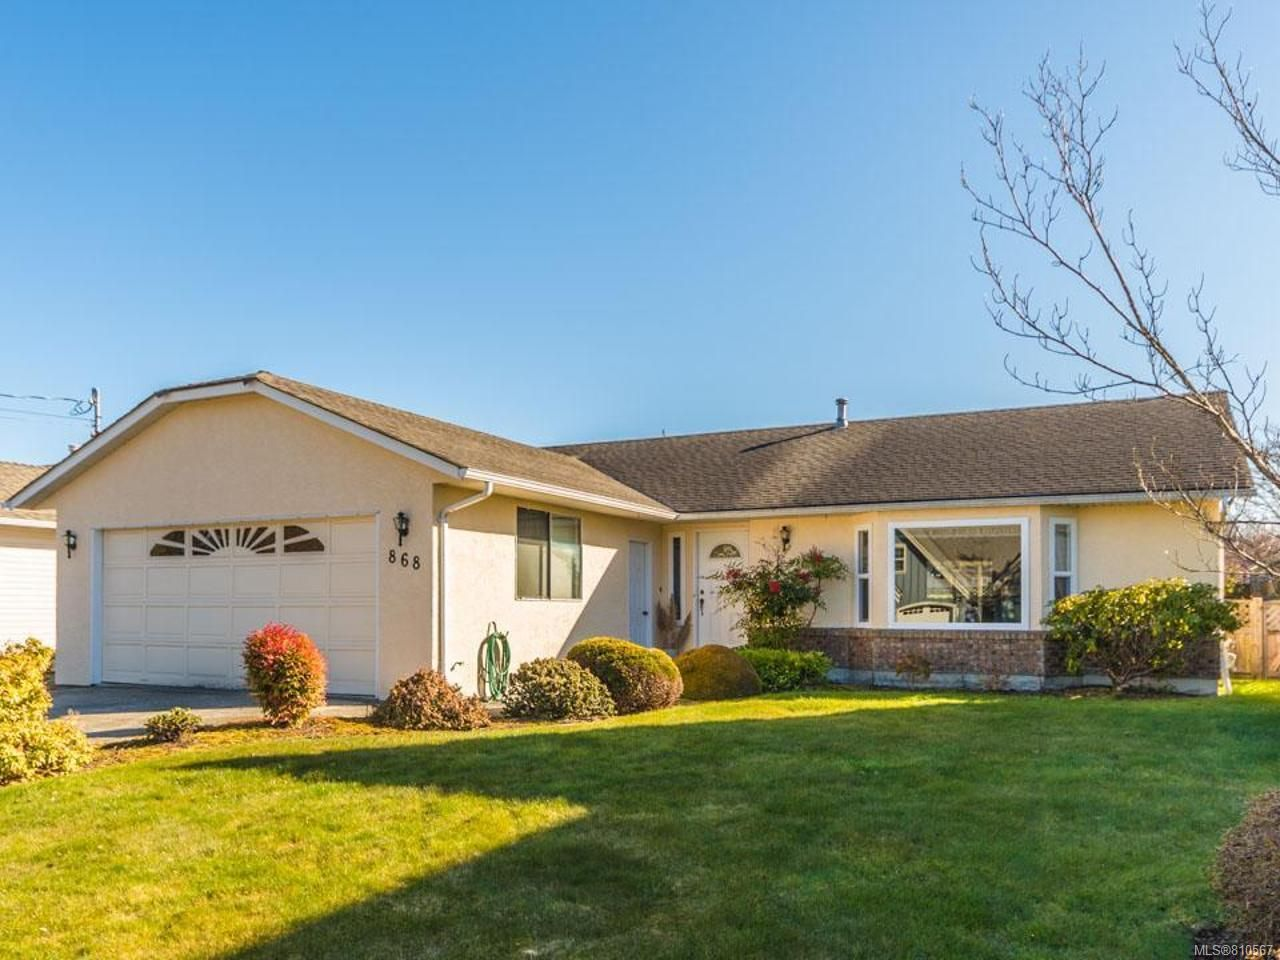 Main Photo: 868 Wright Rd in PARKSVILLE: PQ French Creek House for sale (Parksville/Qualicum)  : MLS®# 810567